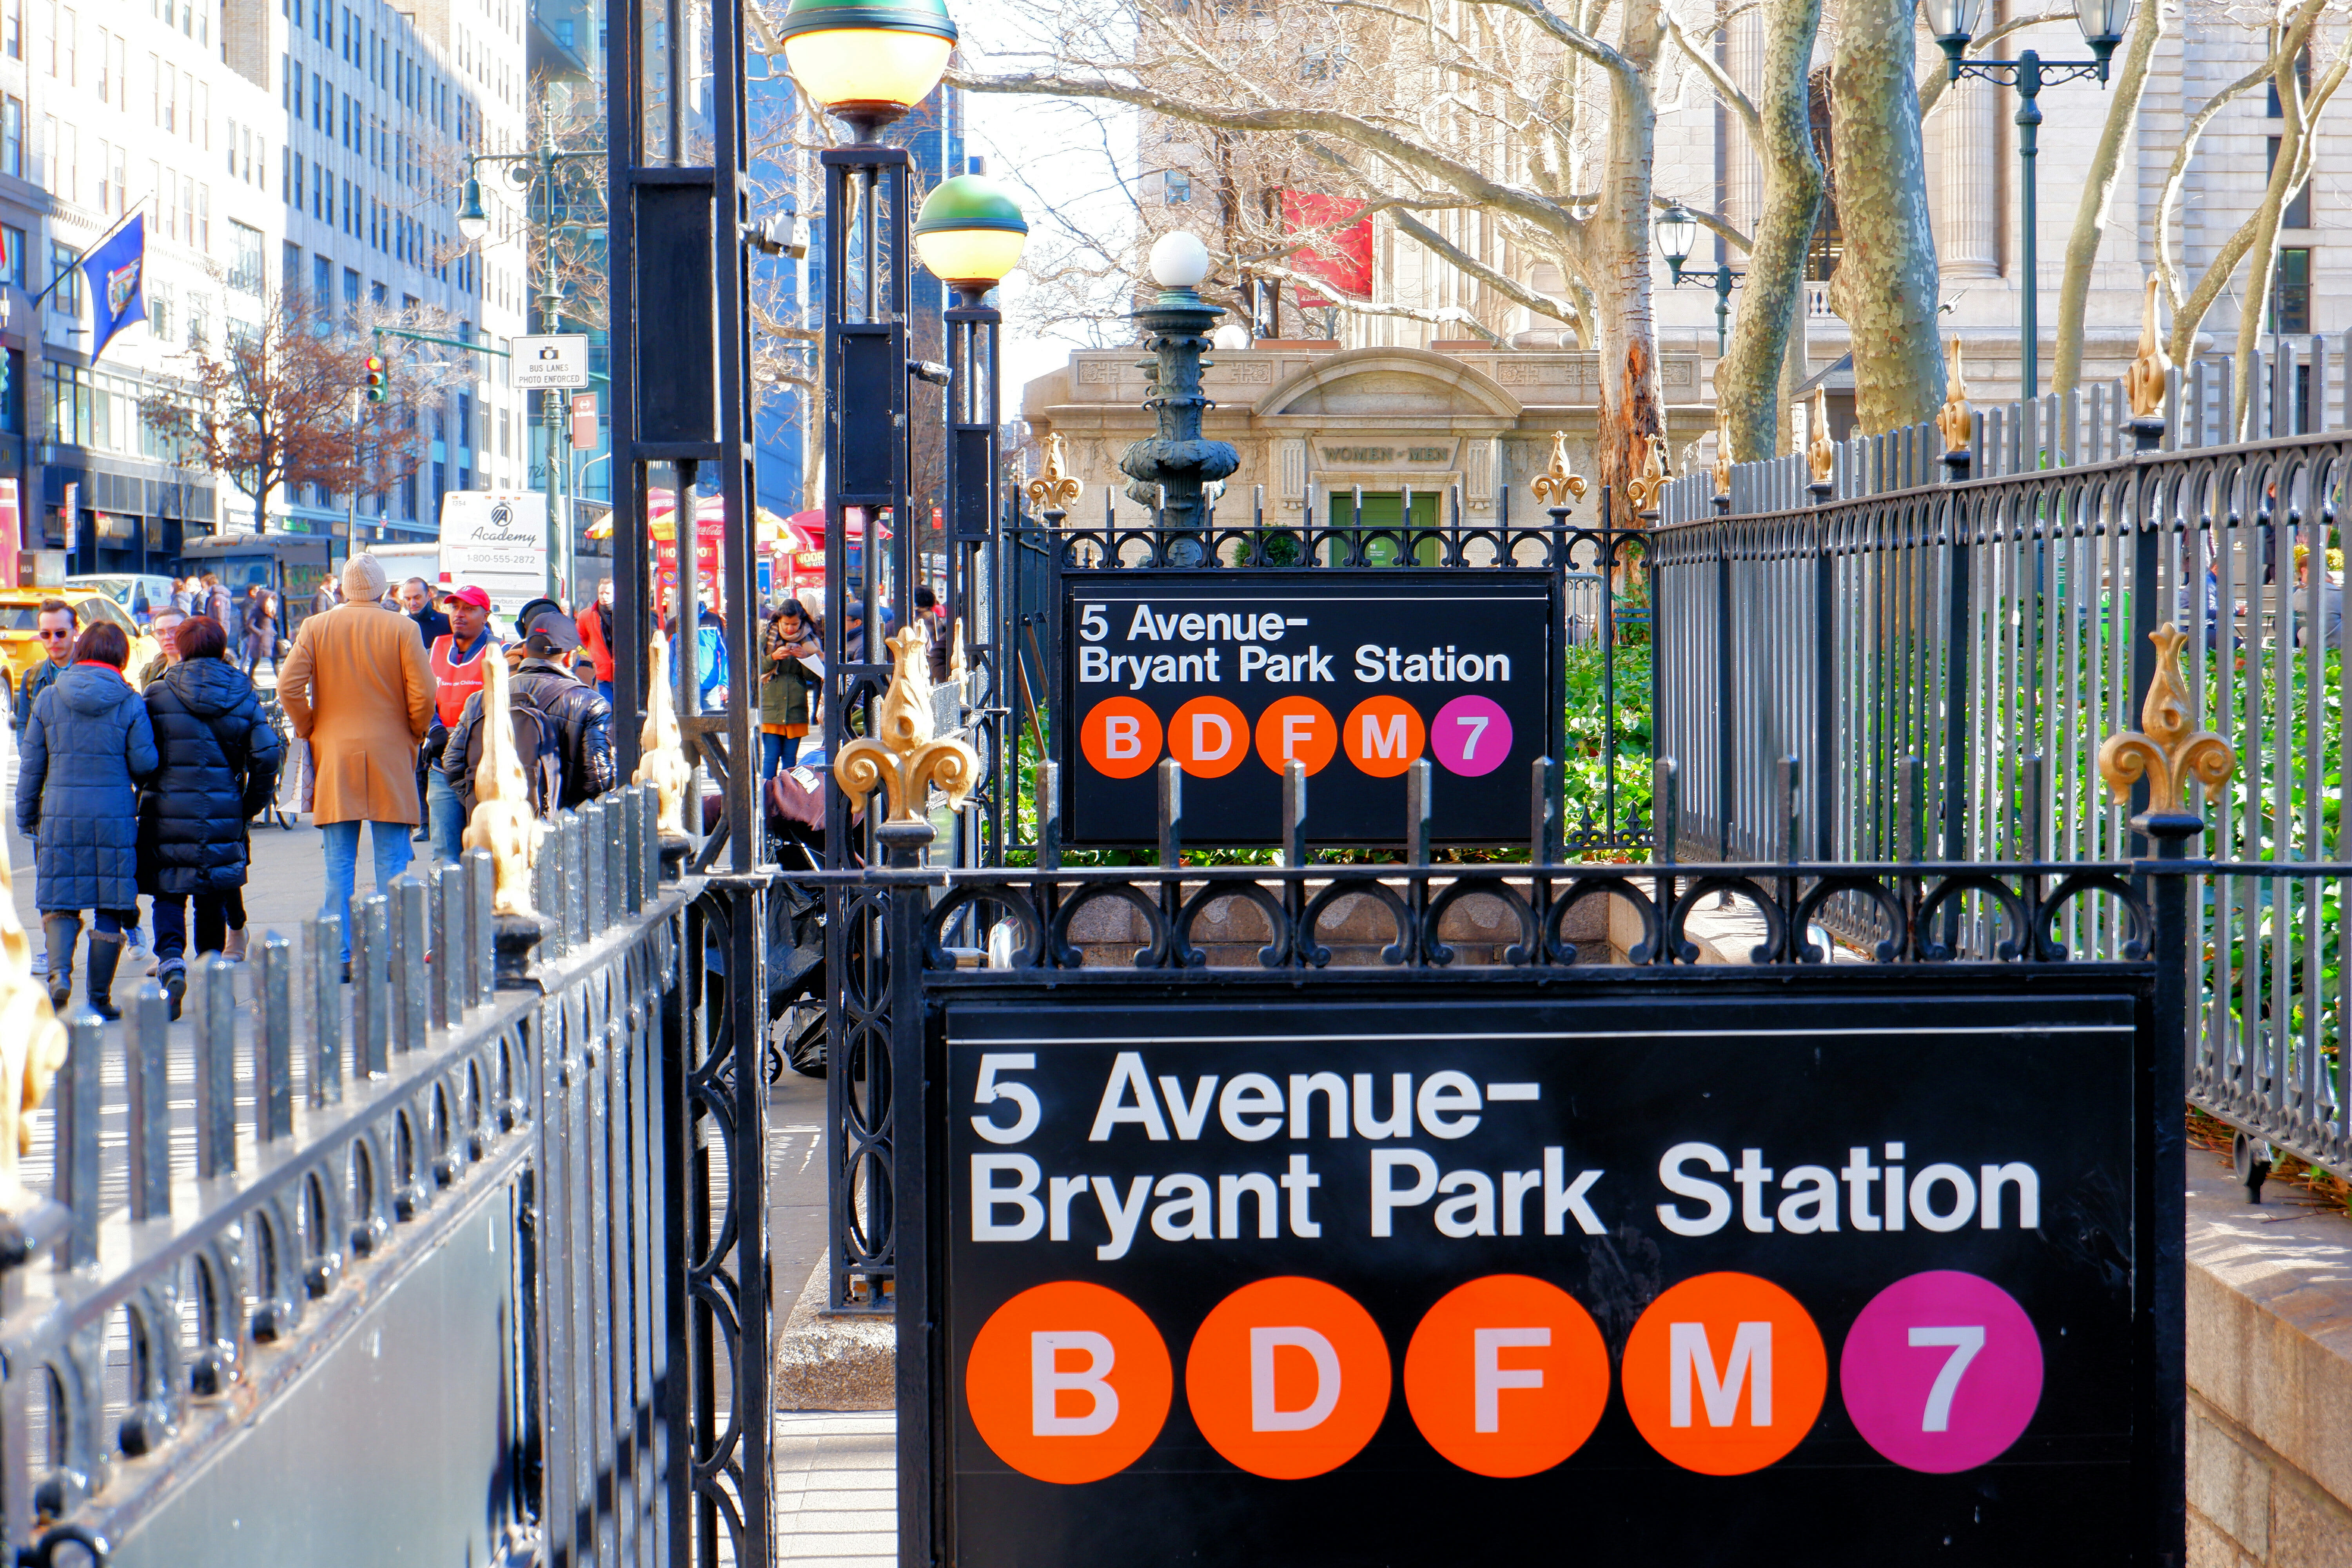 Bryant Park Subway Station – High Quality Wallpaper